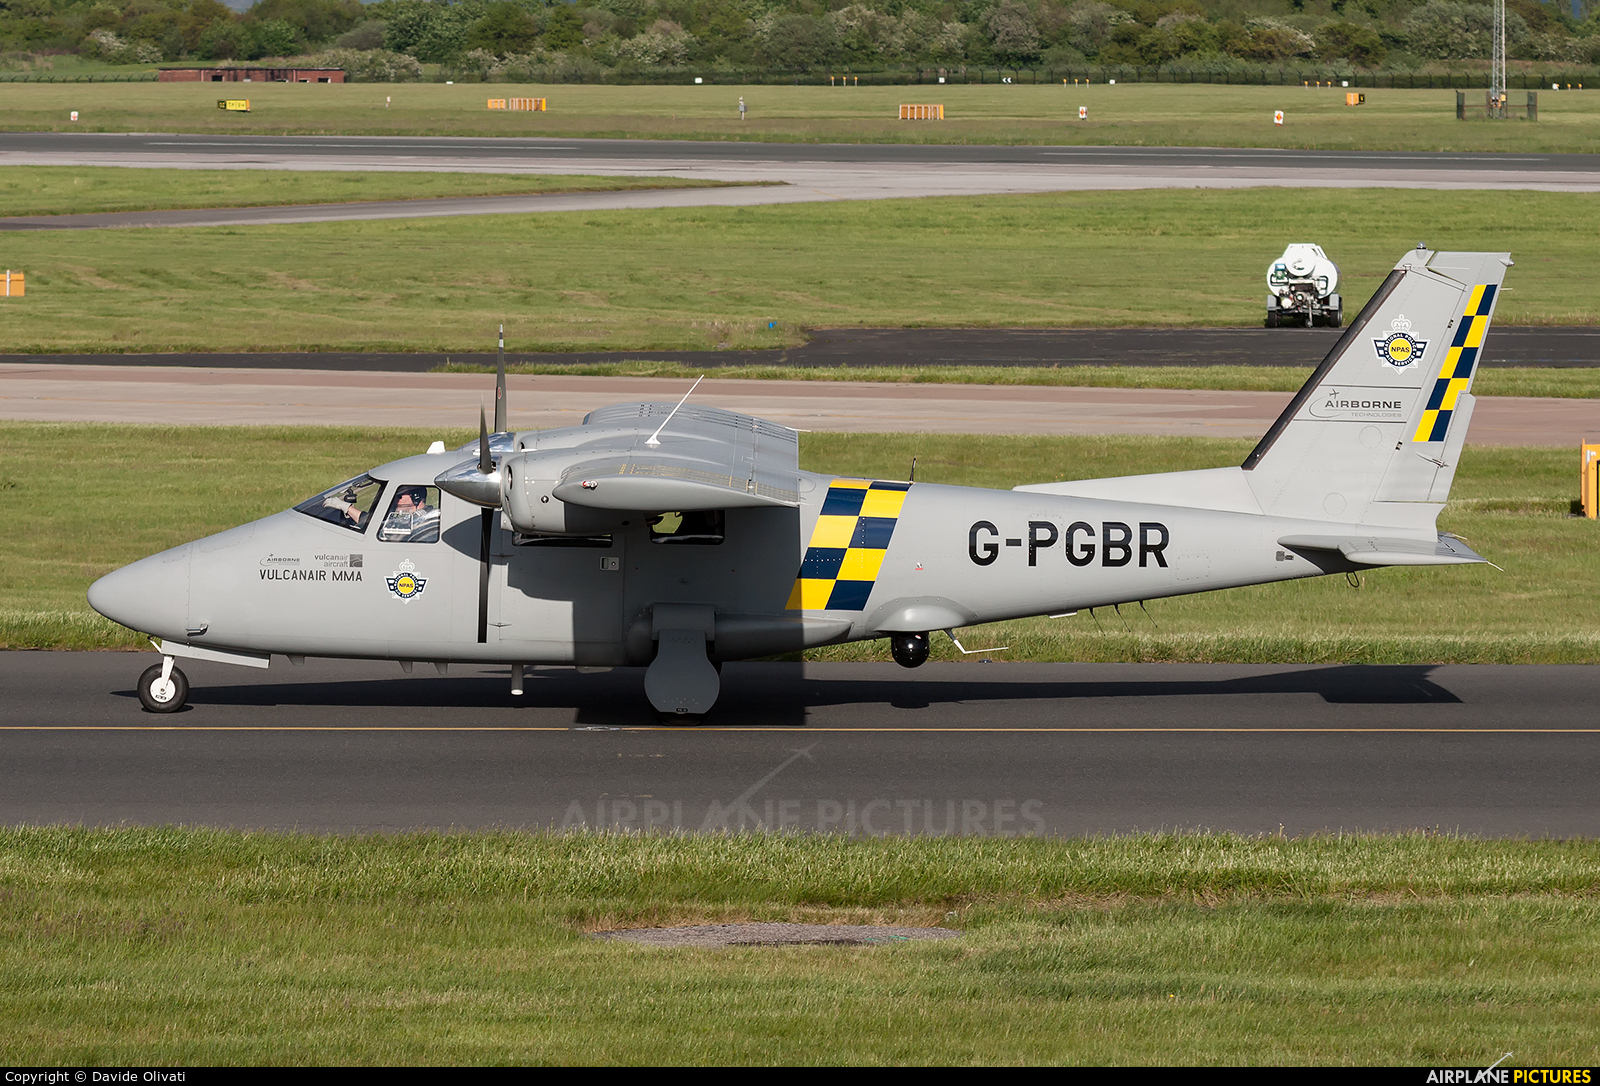 Greater Manchester Police G-PGBR aircraft at Manchester